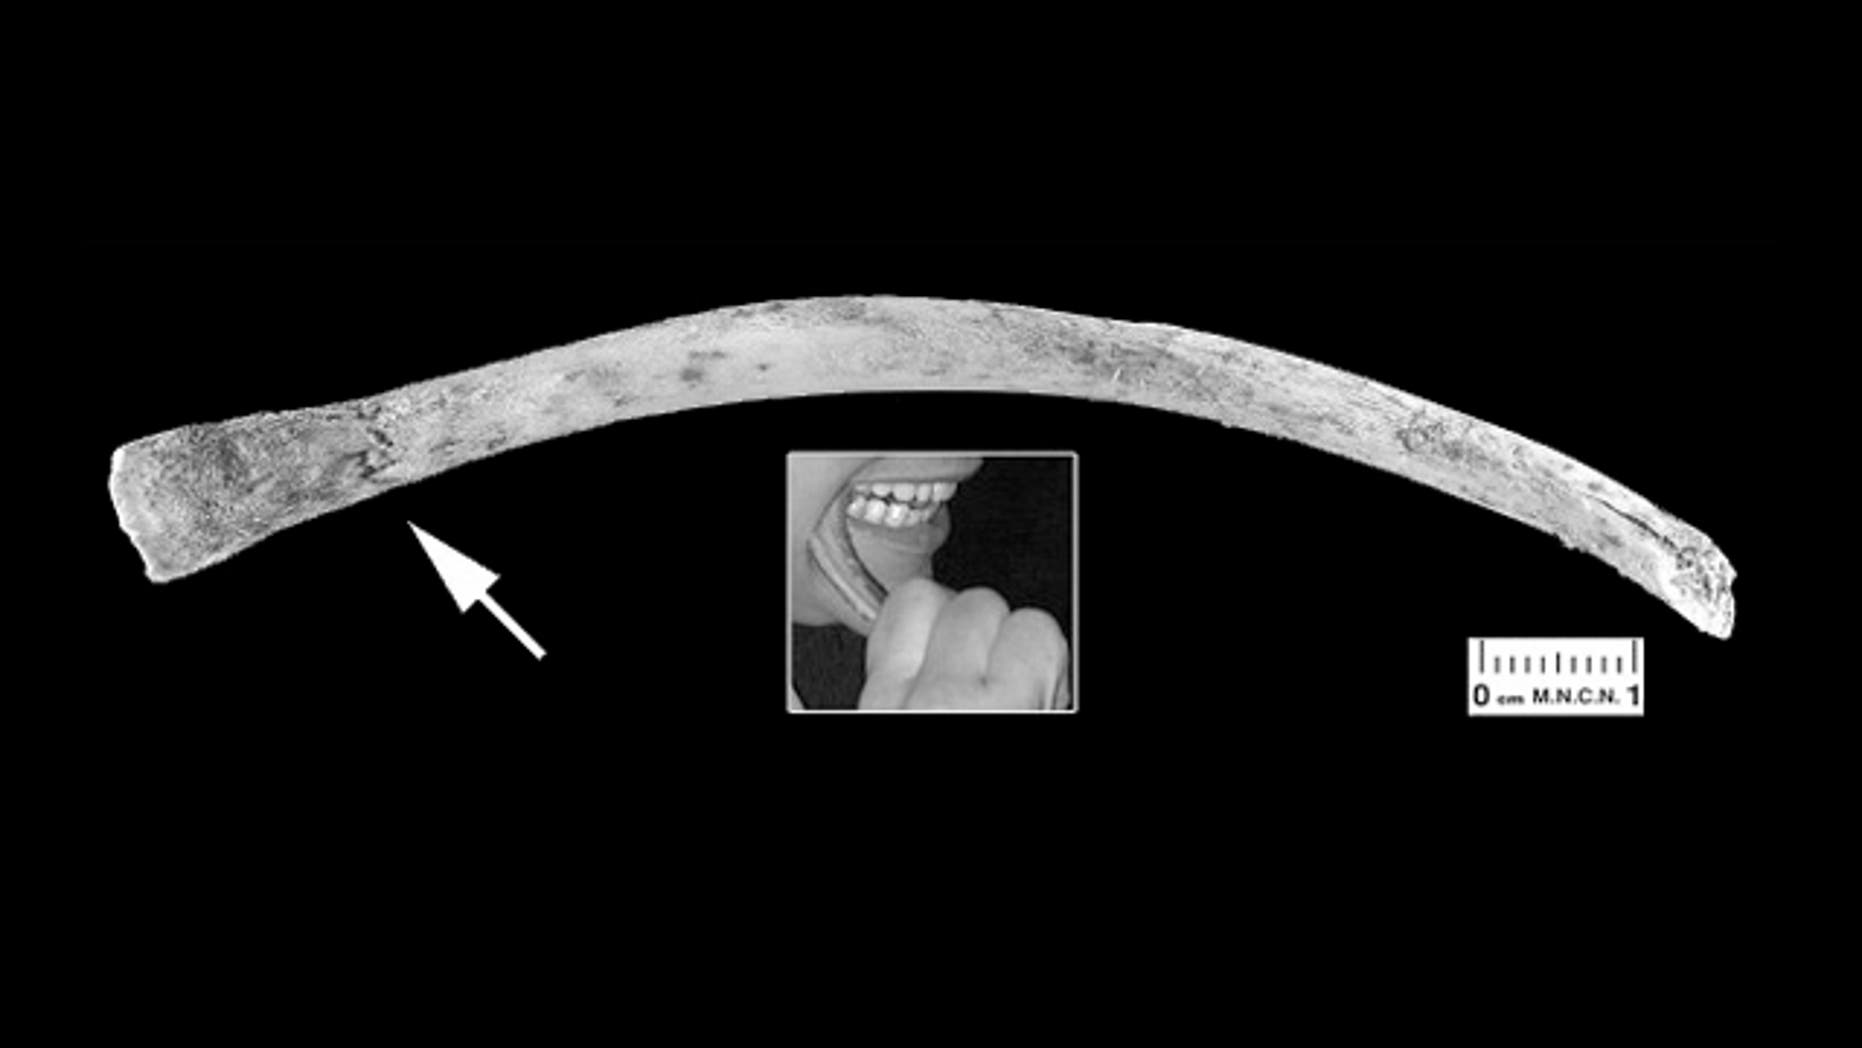 A rib fragment compressed and slightly bent at one end (white arrow) chewed by a European volunteer using the cheek teeth. The small inset shows one of the experimenters performing this action.